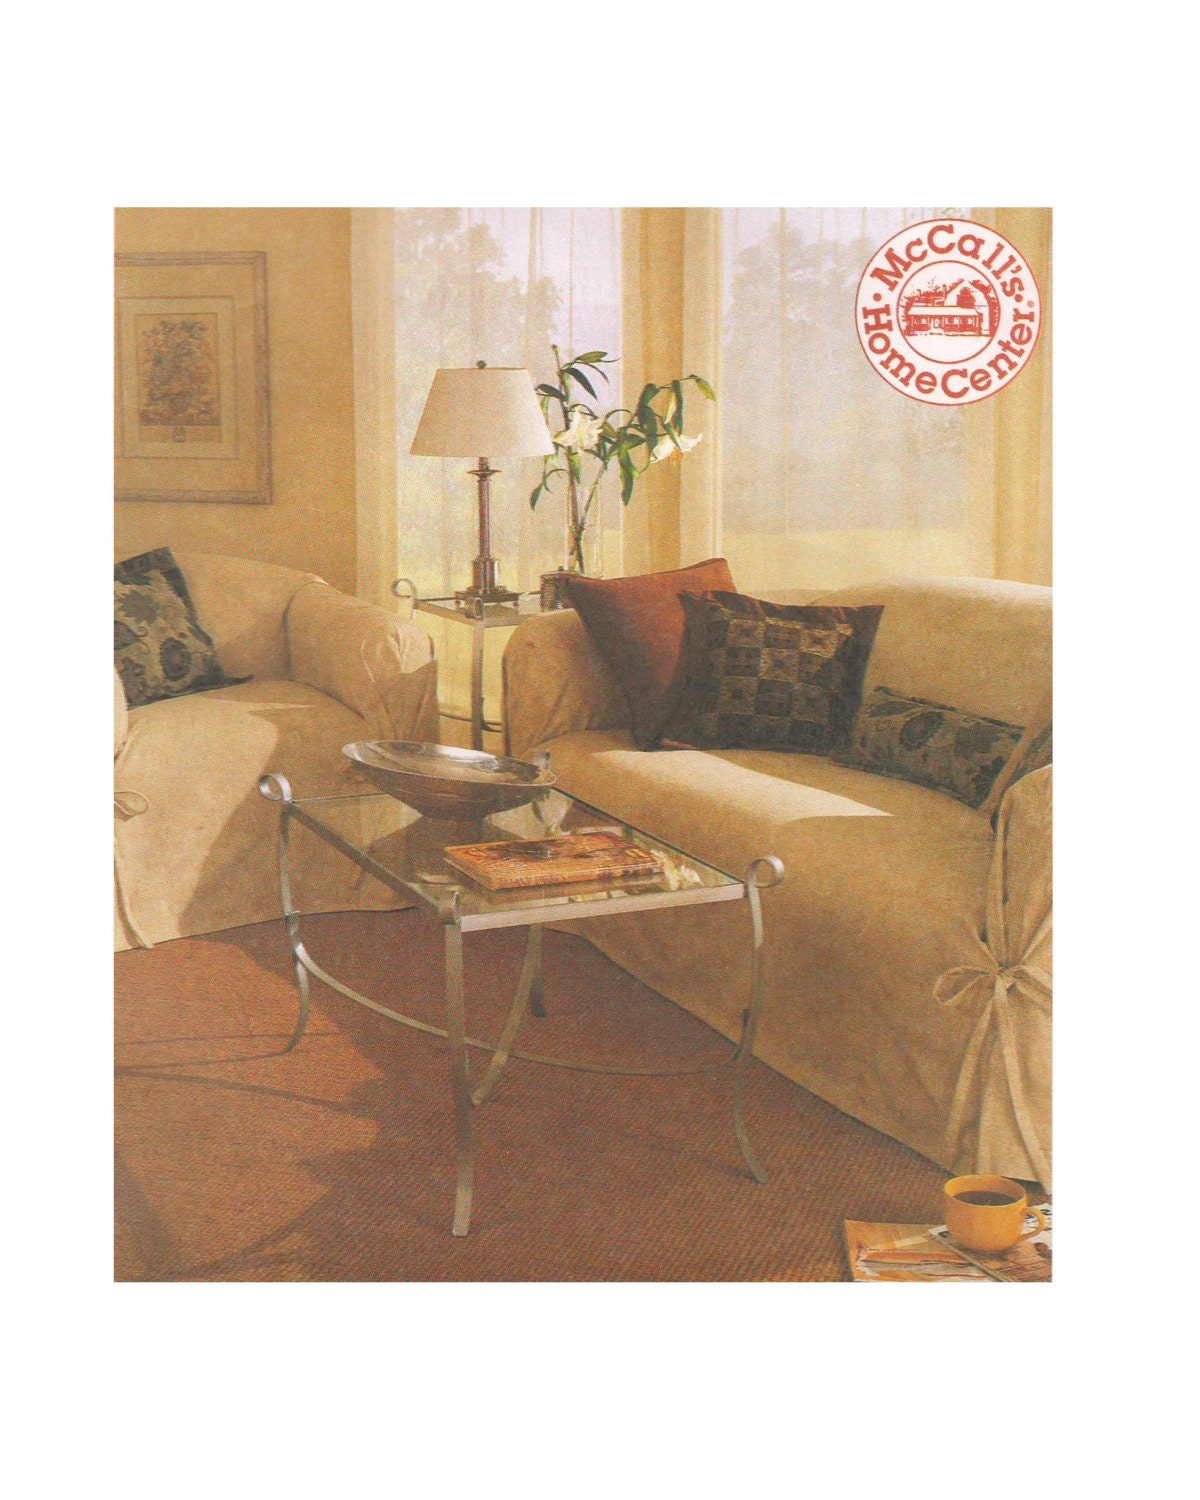 Mccalls 2161 1990s sewing pattern home decorating cover for Home decor 1990s